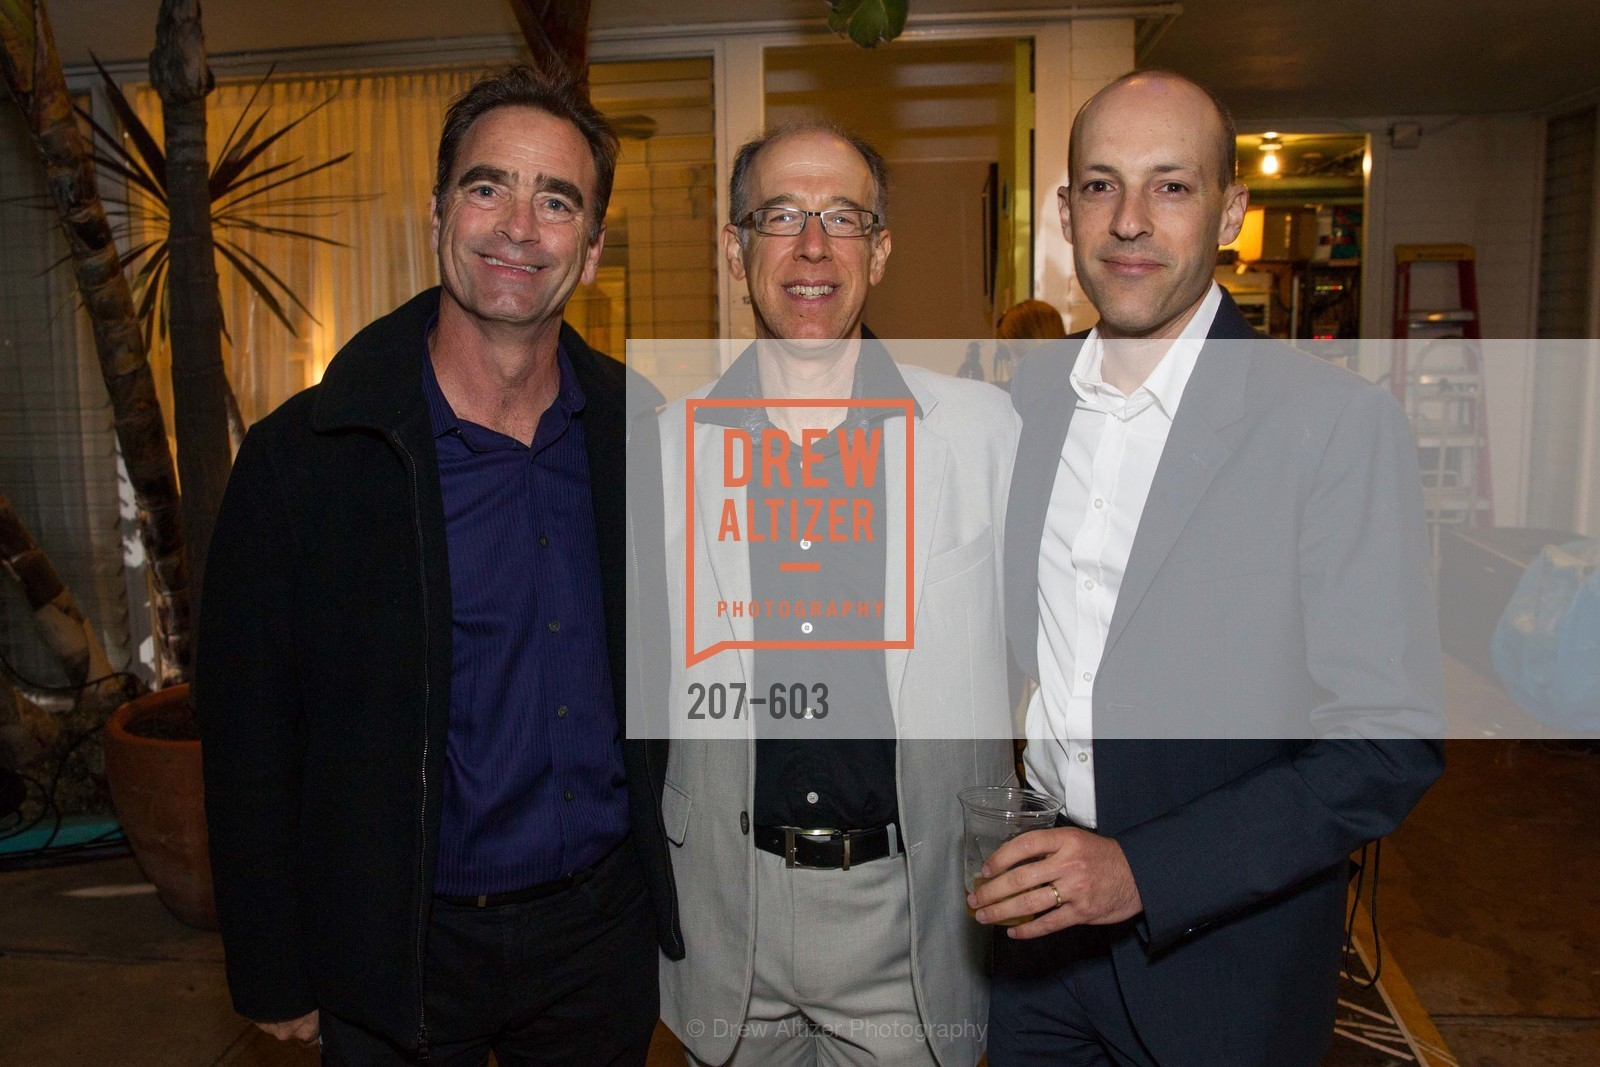 Steven Dinkelspiel, Don Falk, Jon Steinberg, 22nd Annual TNDC CELEBRITY POOL TOSS, US, October 9th, 2014,Drew Altizer, Drew Altizer Photography, full-service agency, private events, San Francisco photographer, photographer california